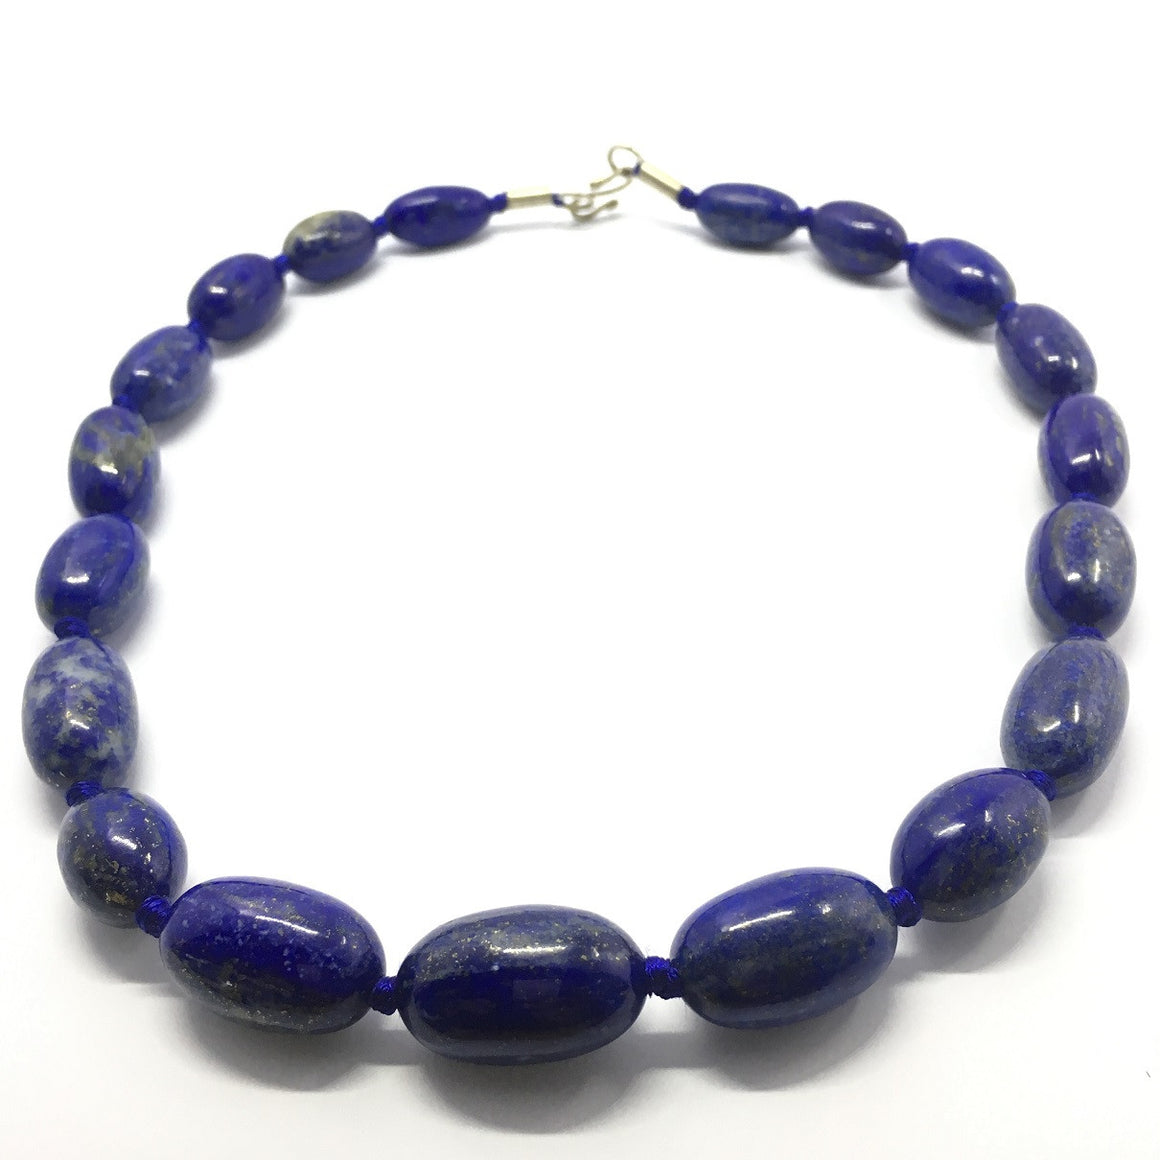 Lapis Lazuli Necklace - Lapis Necklace 19 Oval Beads - 547.0 ct